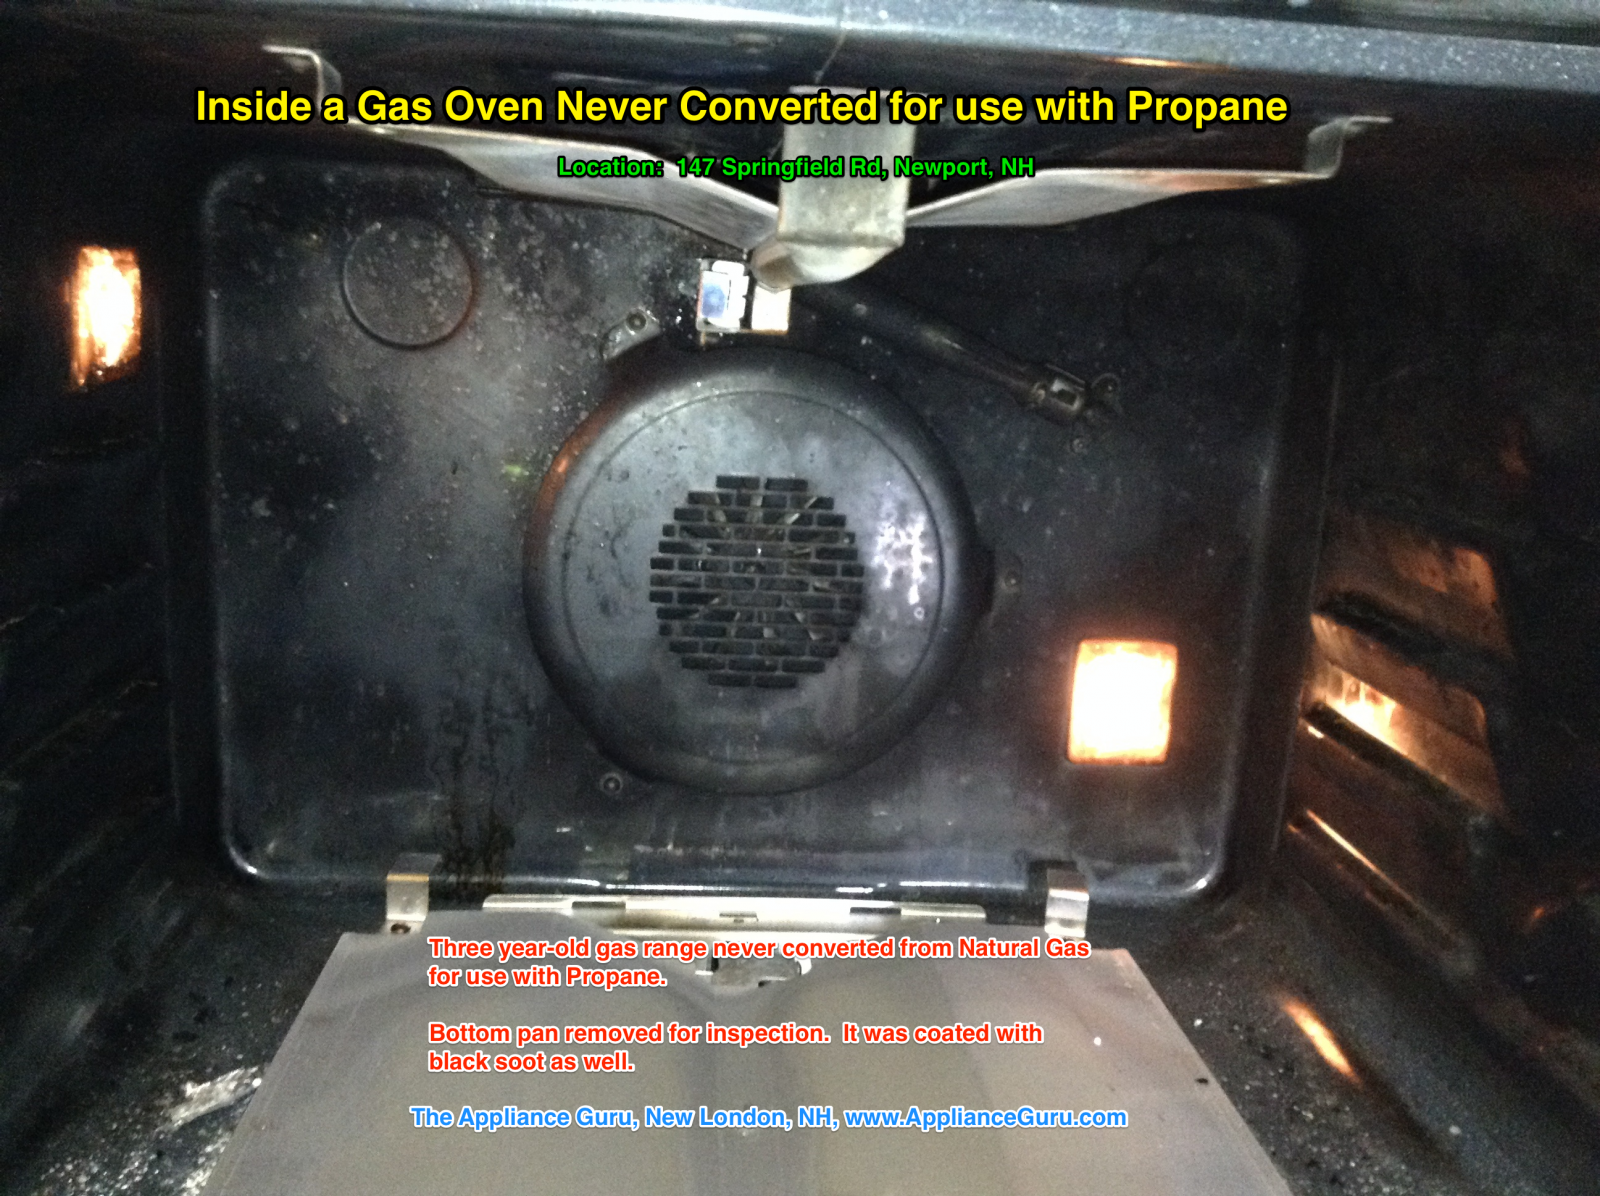 Inside A Gas Oven Never Converted For Use with Propane